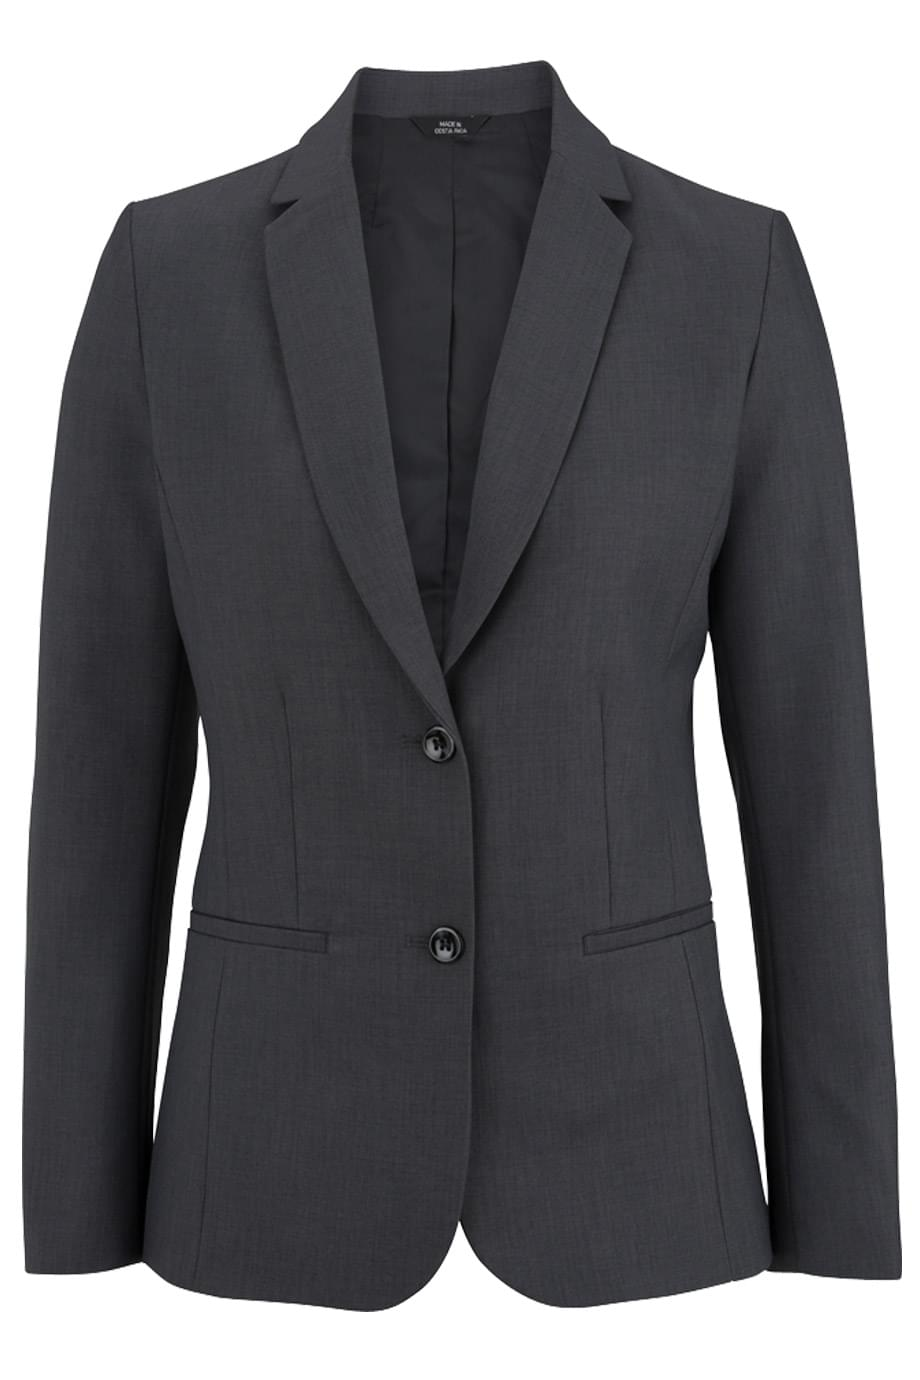 REDWOOD & ROSS® SYNERGY SUIT COAT